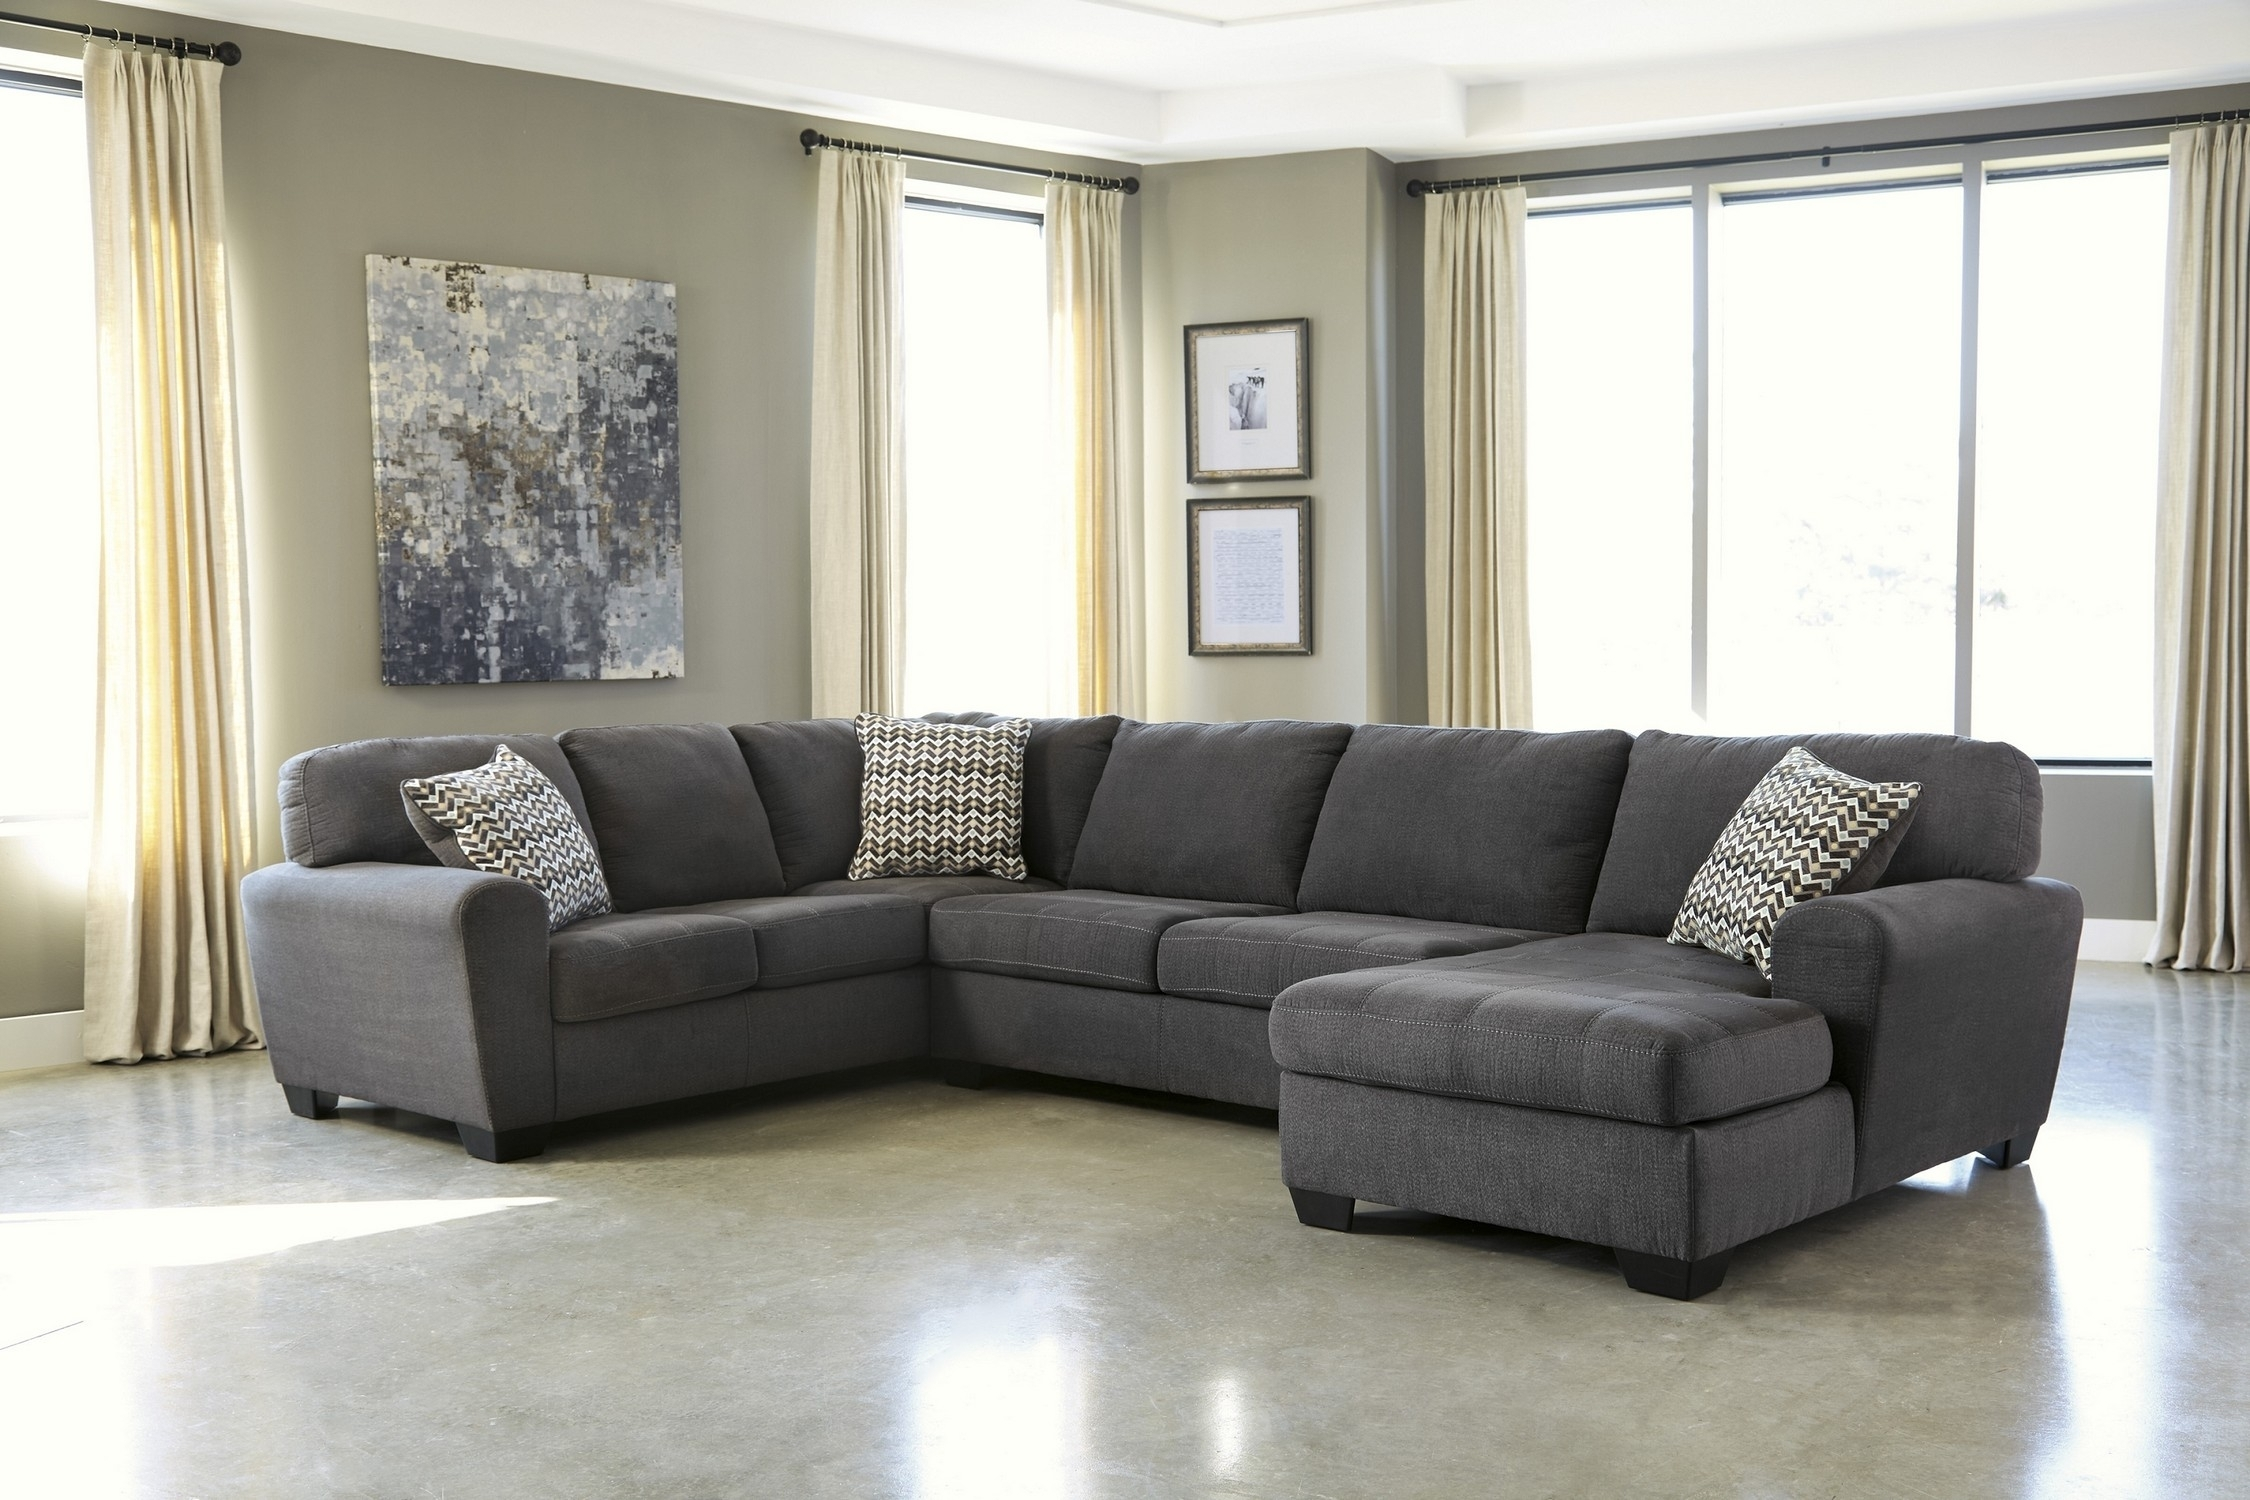 Grey Sectional Sofa Under 1000 • Sectional Sofa Within Sectional Sofas Under 1500 (Photo 8 of 10)